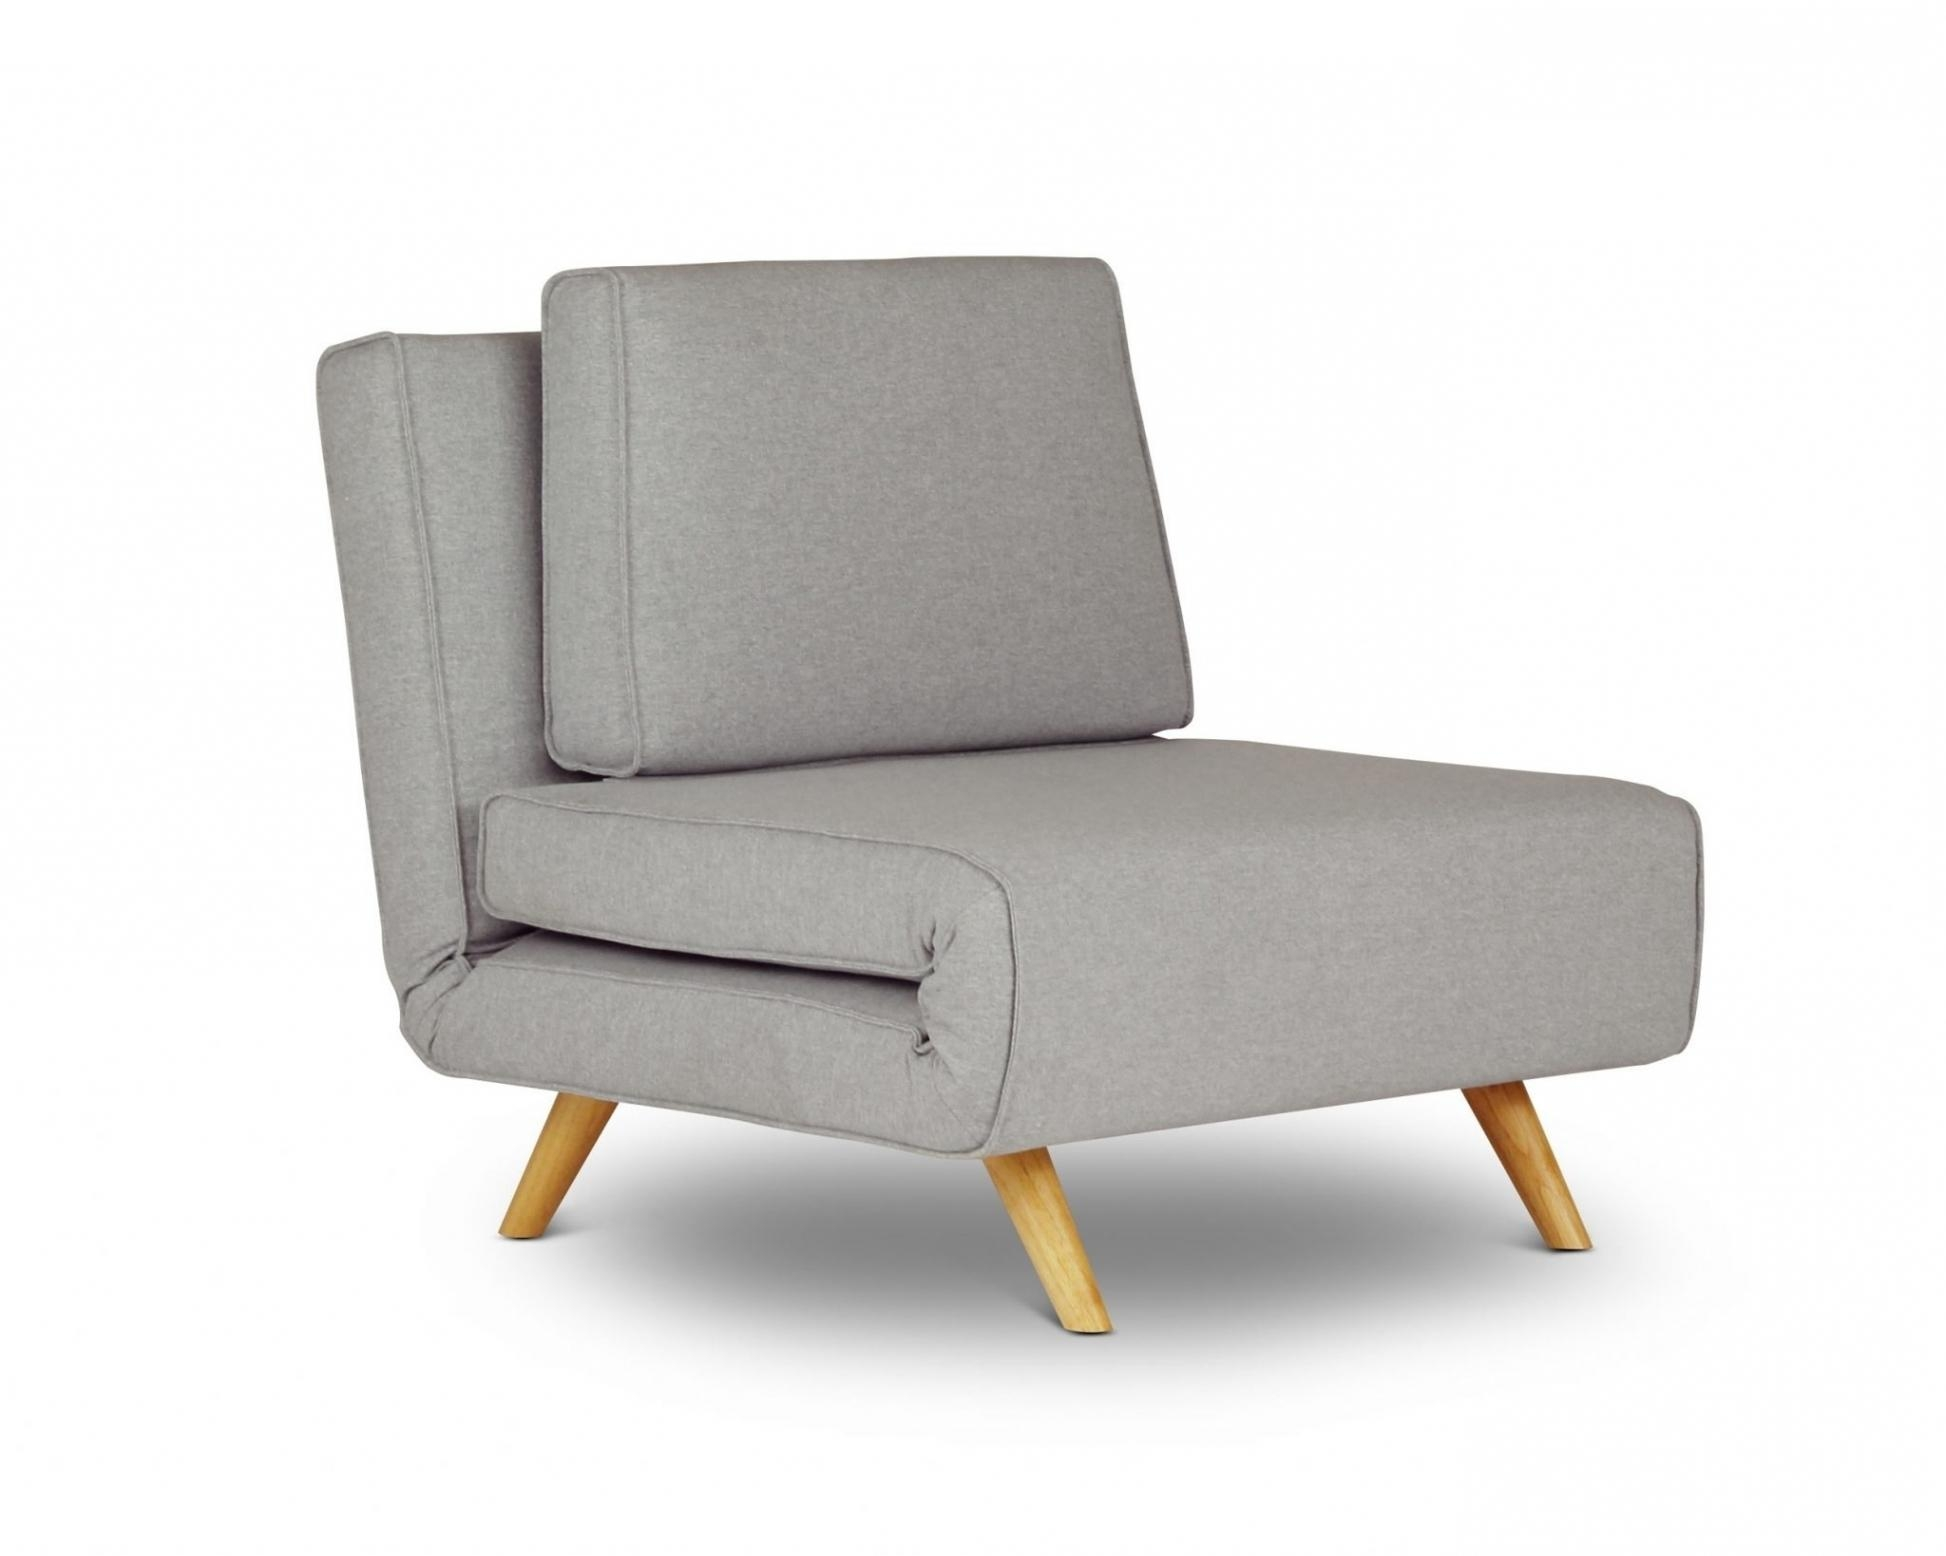 Sofas | Couches – Sears | Tehranmix Decoration Inside Single Sofa Bed Chairs (Image 17 of 20)